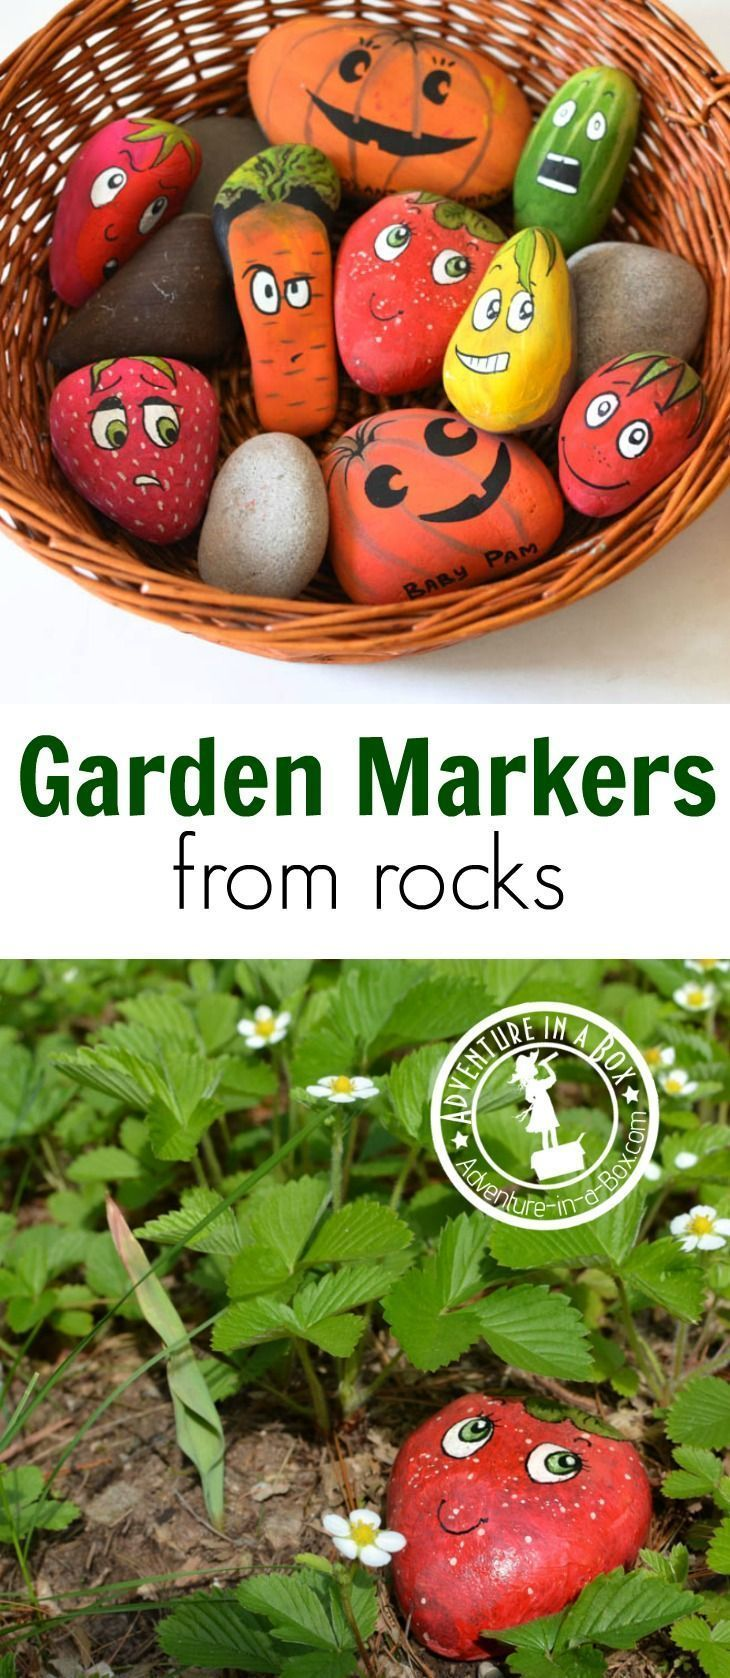 Photo of How to Make Garden Markers by Painting Stones